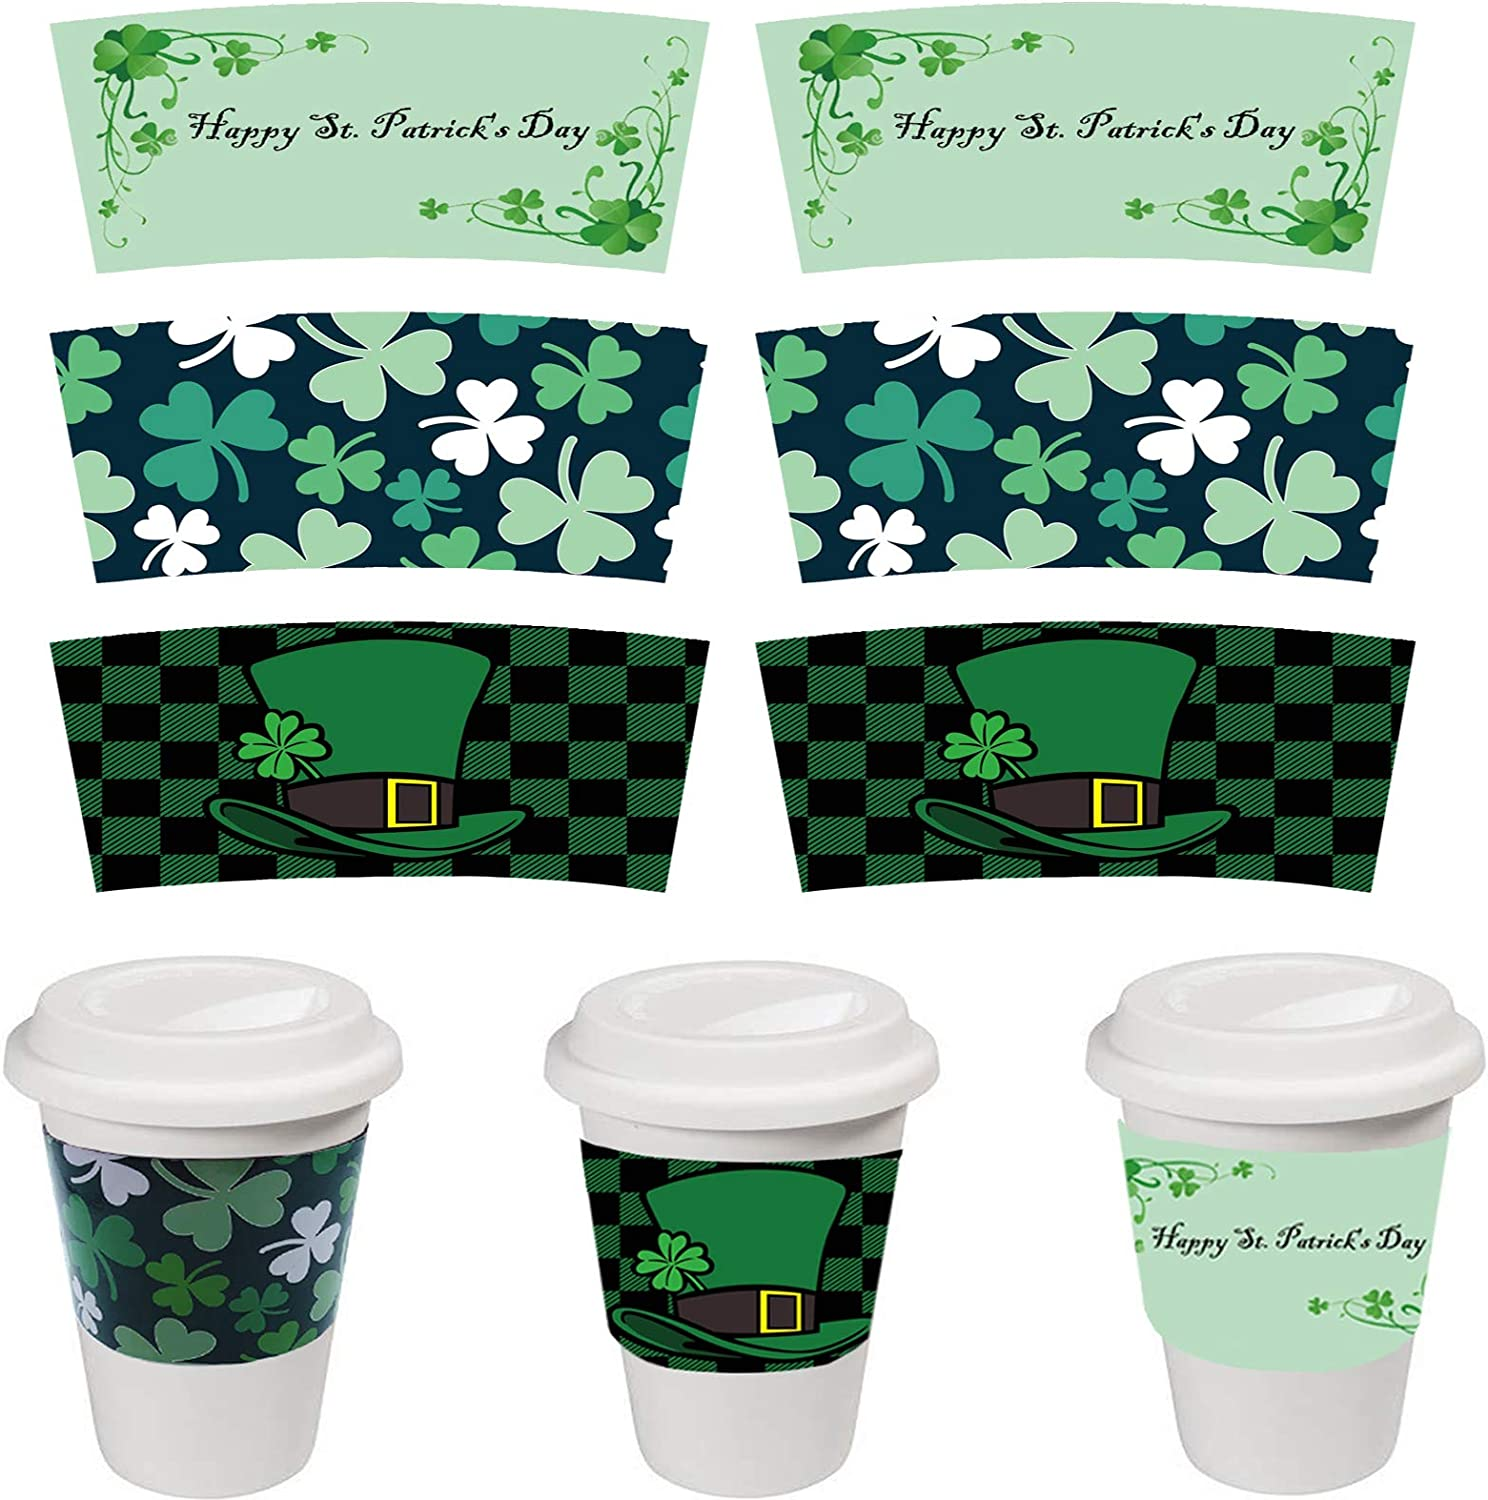 DSHE Holiday Coffee Cup Sleeve 30 Packs Green Tea Cup Sleeves 3 Different St. Patrick's Day Themes Paper Coffeecup Sleeves for Disposable Party Cups 12 and 16oz Cup Jacket